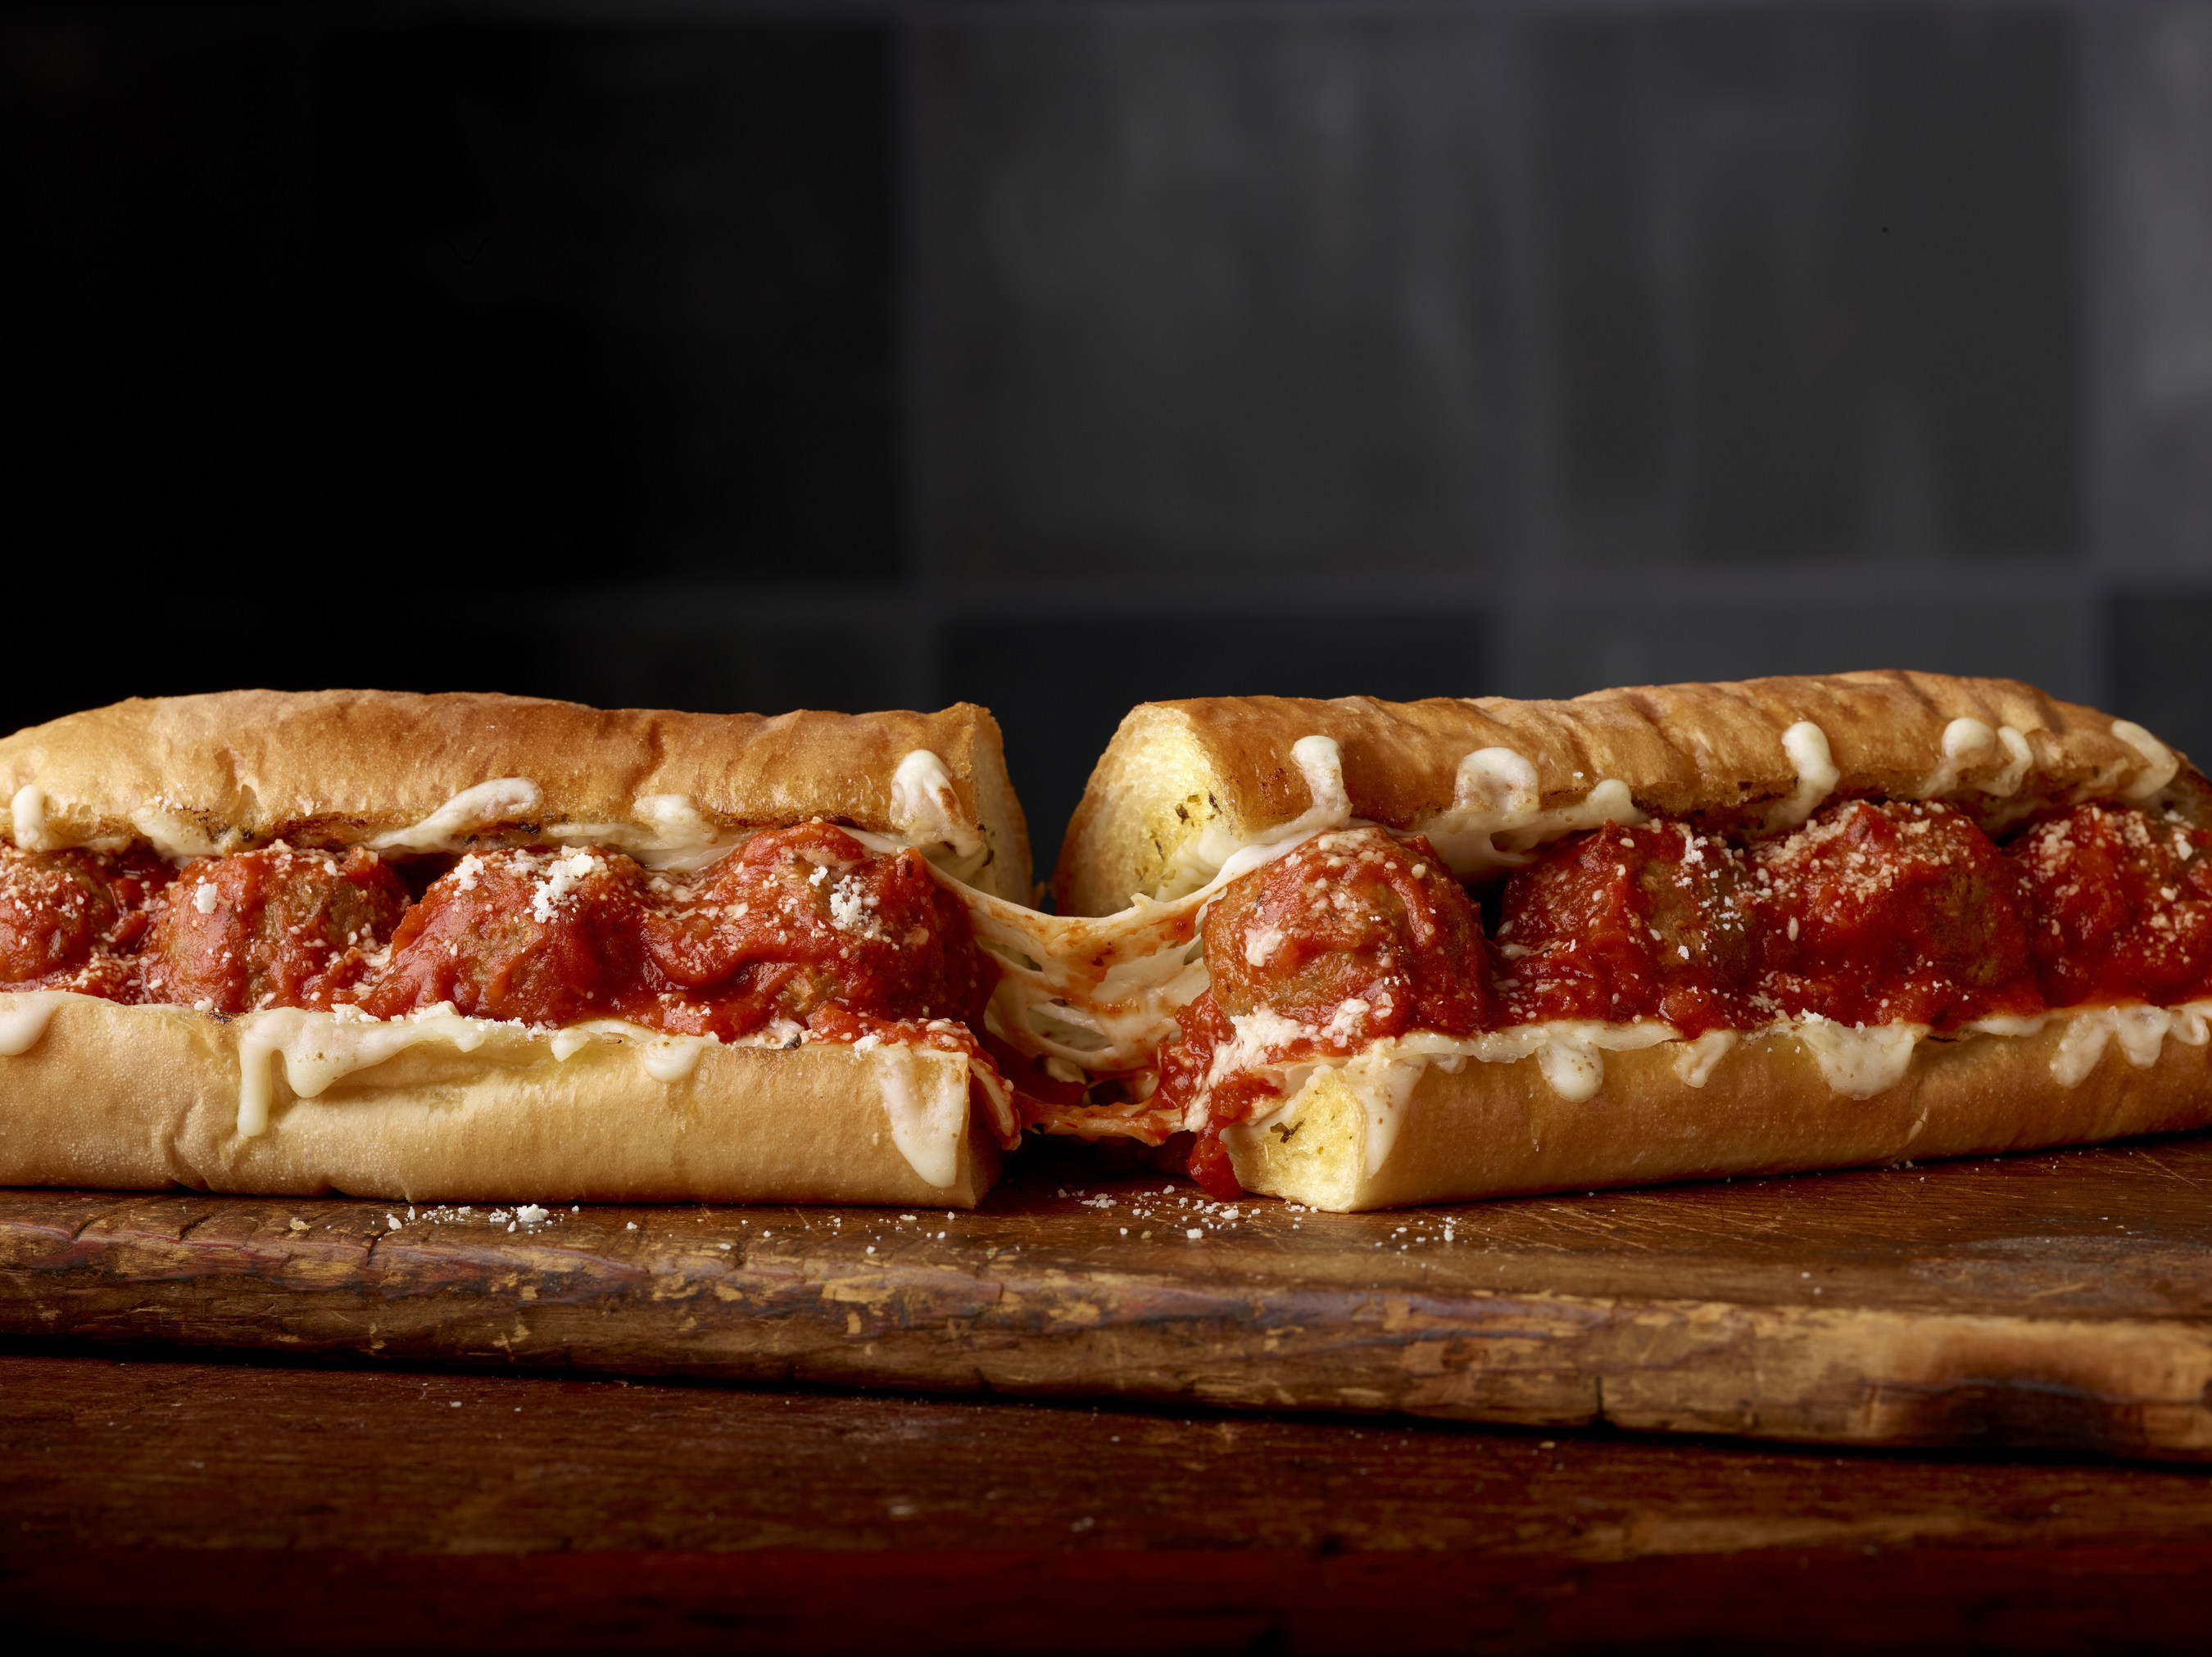 The New Subway® Ultimate Cheesy Garlic Bread provides a craveable, indulgent new twist on the classic Meatball Marinara (pictured) and Spicy Italian sandwiches. Available now through February 27th at participating U.S. restaurants.